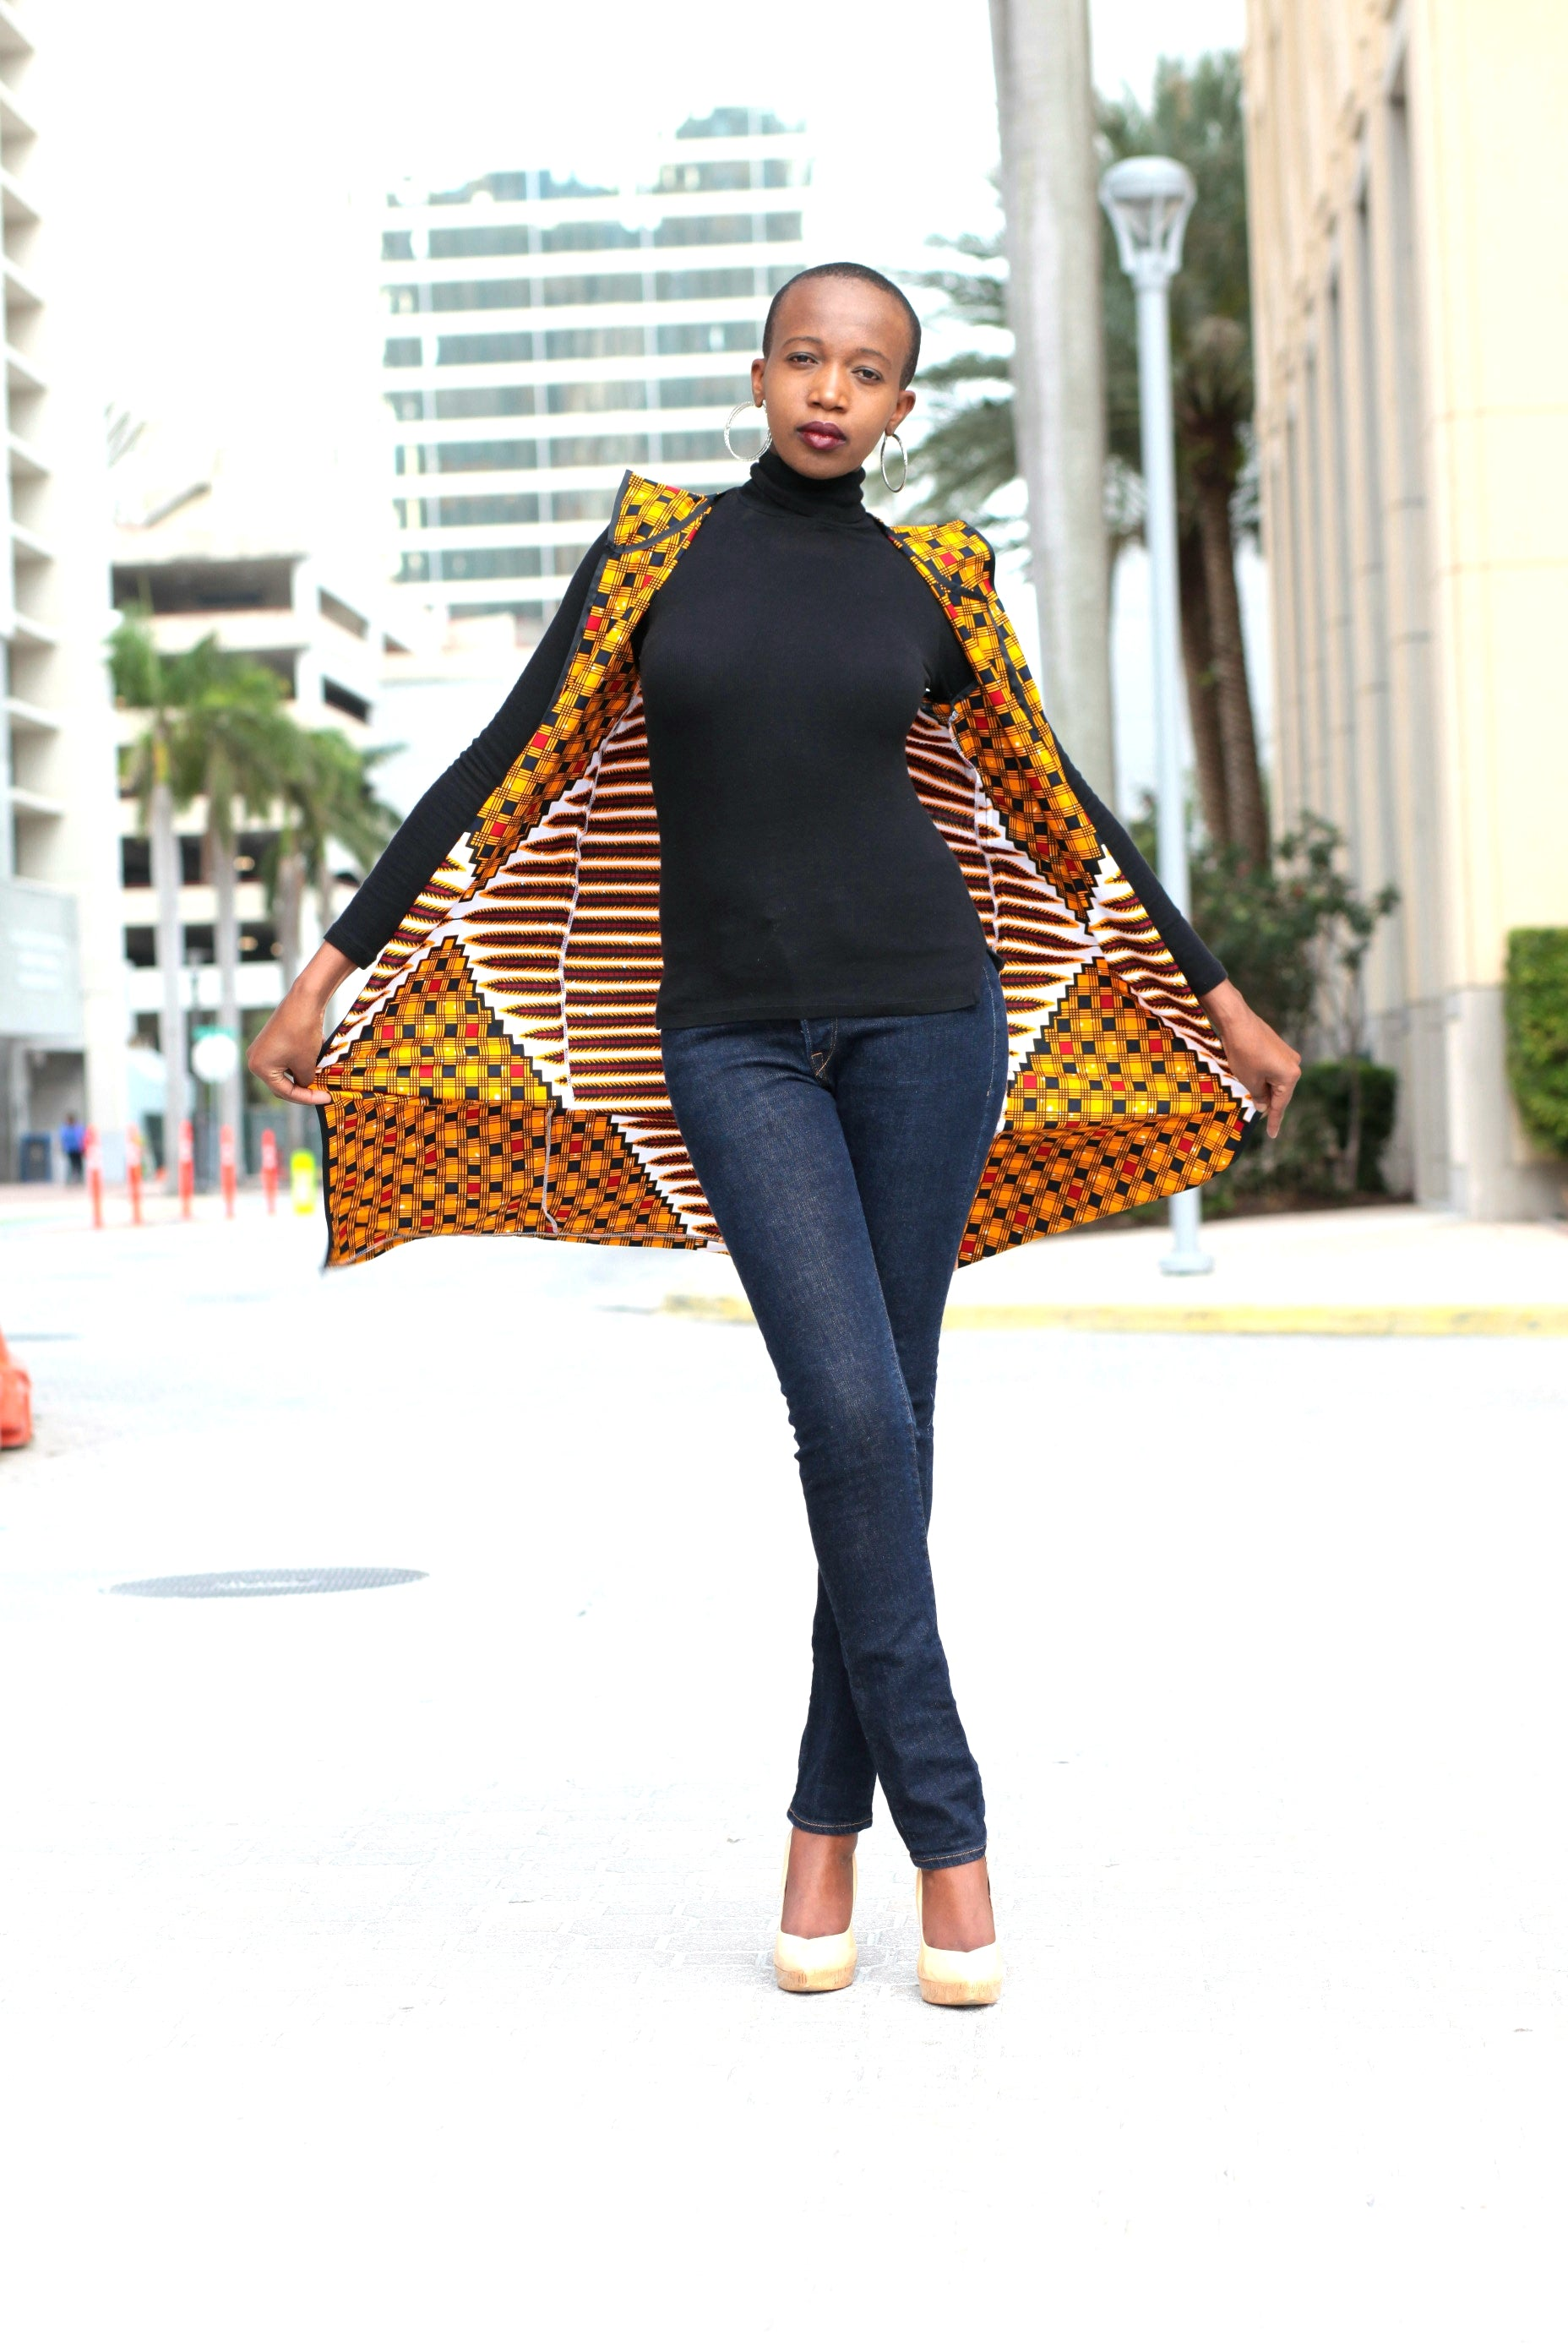 African Print Sleeveless Longline Shrug - Gold/Red Geometric Print - Africas Closet